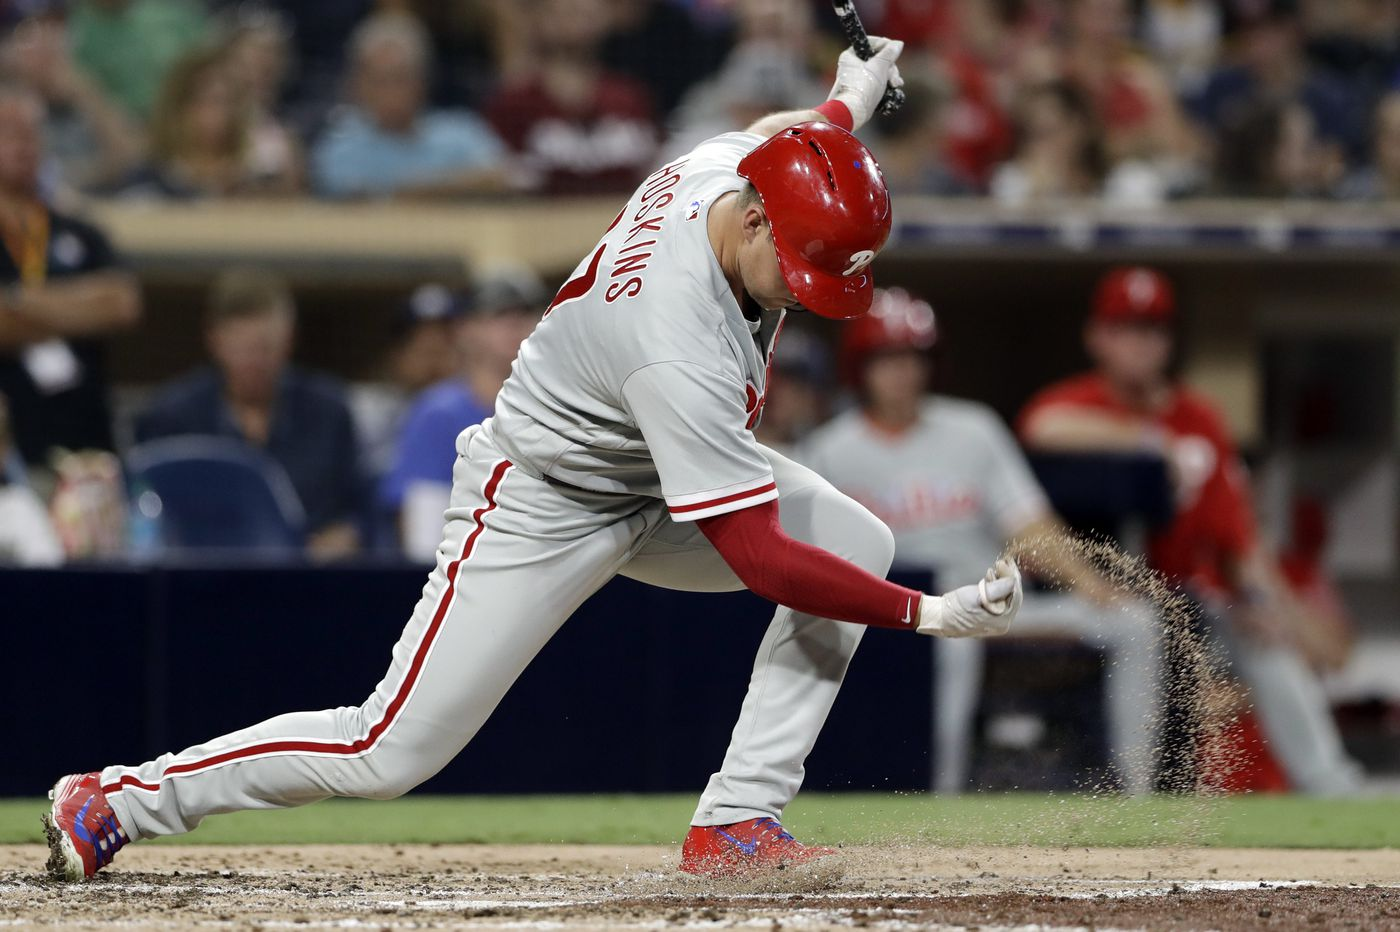 Rhys Hoskins, Carlos Santana struggling offensively as Phillies limp home from West Coast